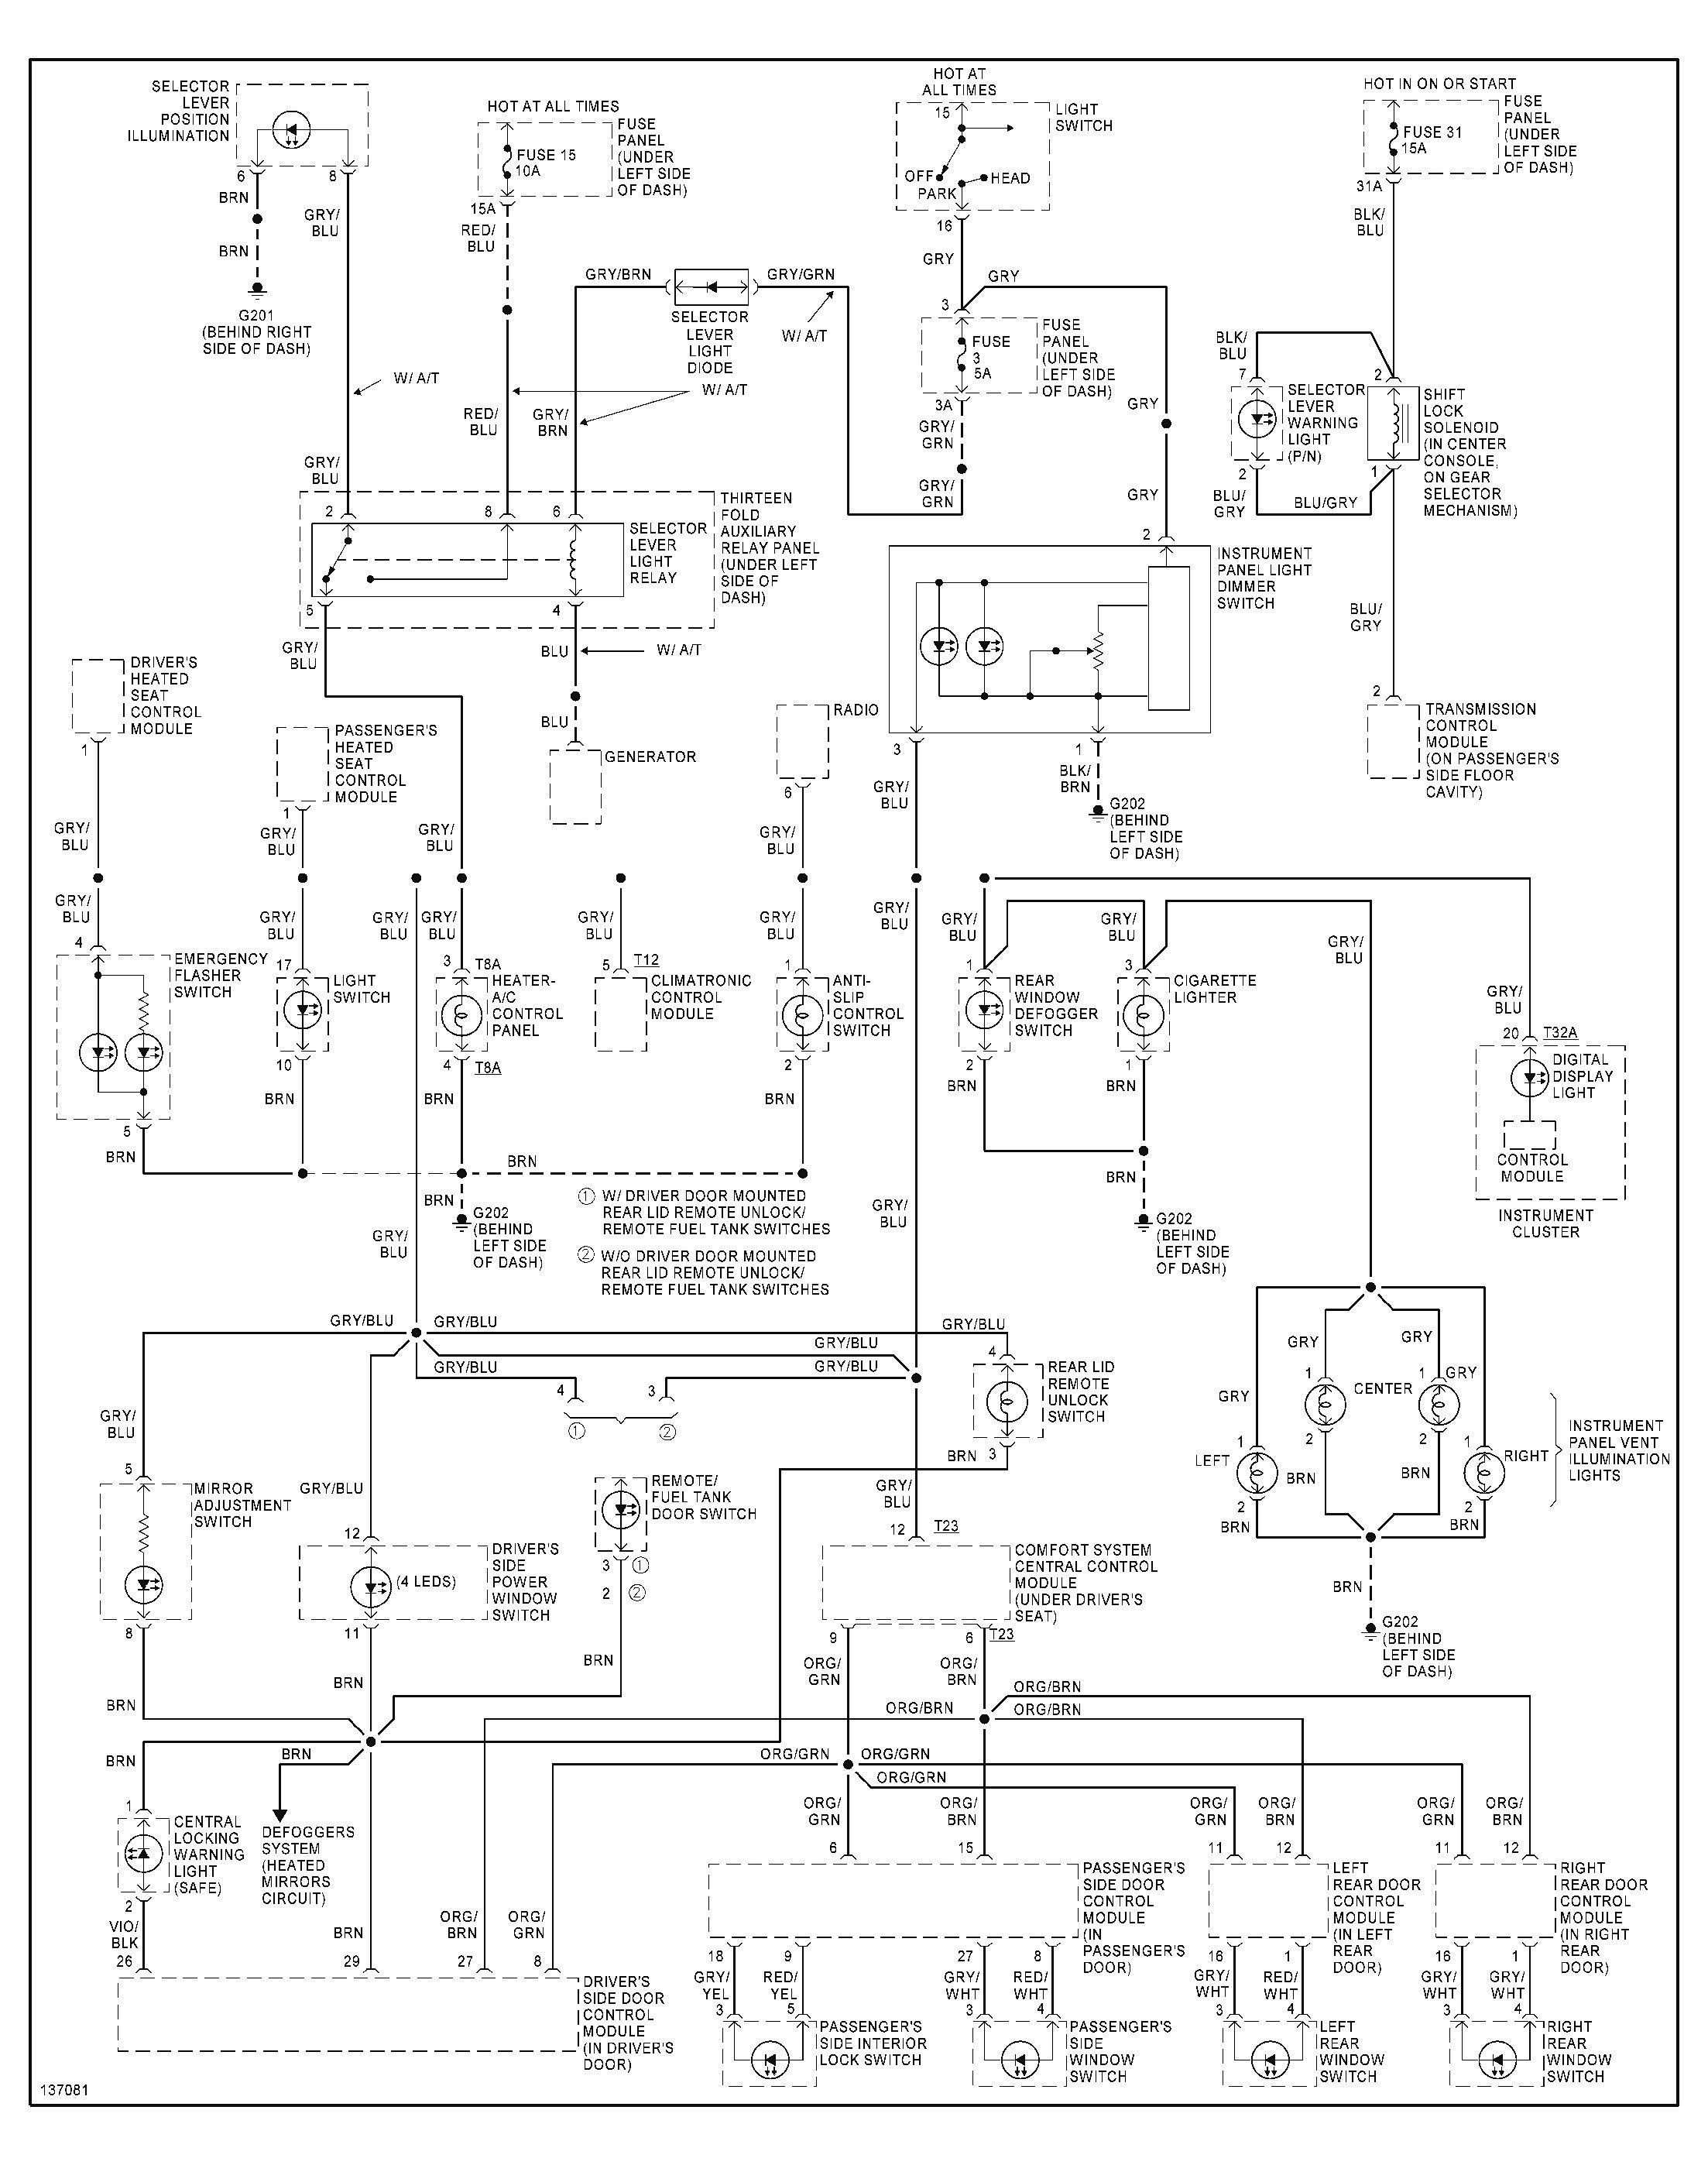 wiring diagram for 1999 jeep wrangler - wiring diagram last-data -  last-data.disnar.it  disnar.it